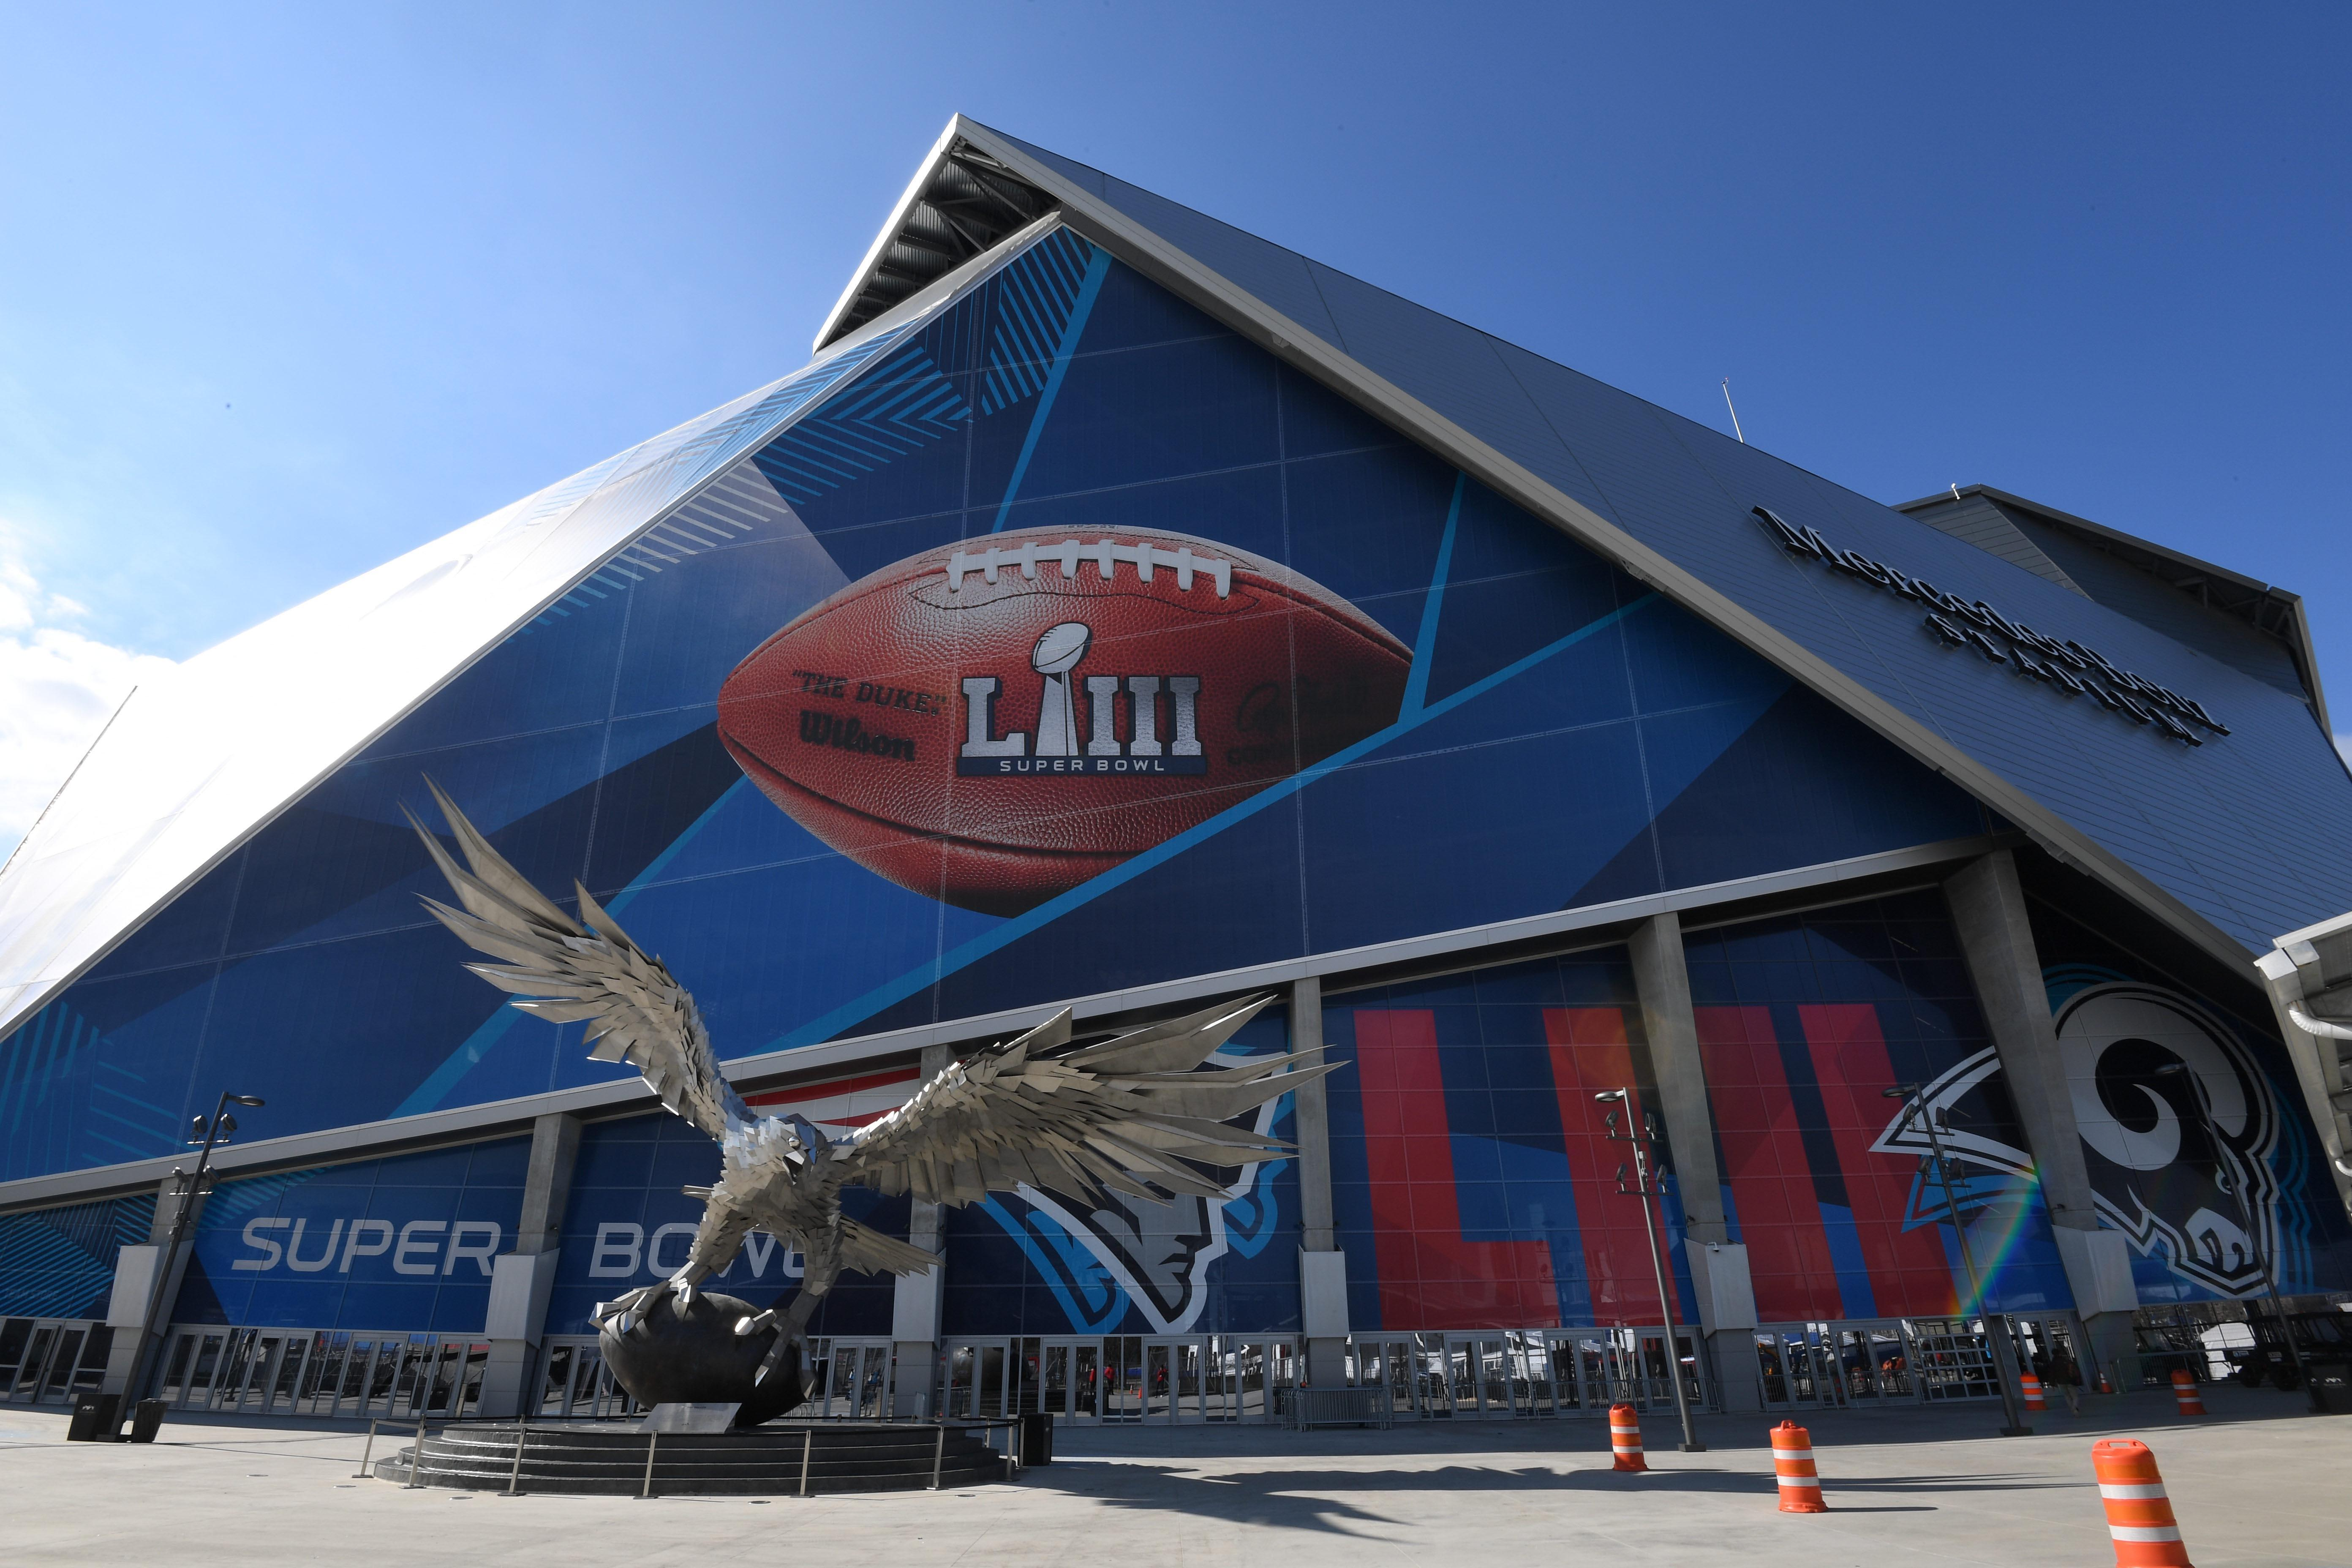 Mercedes Benz Stadium in Atlanta is gearing up to host Super Bowl 53 on Sunday